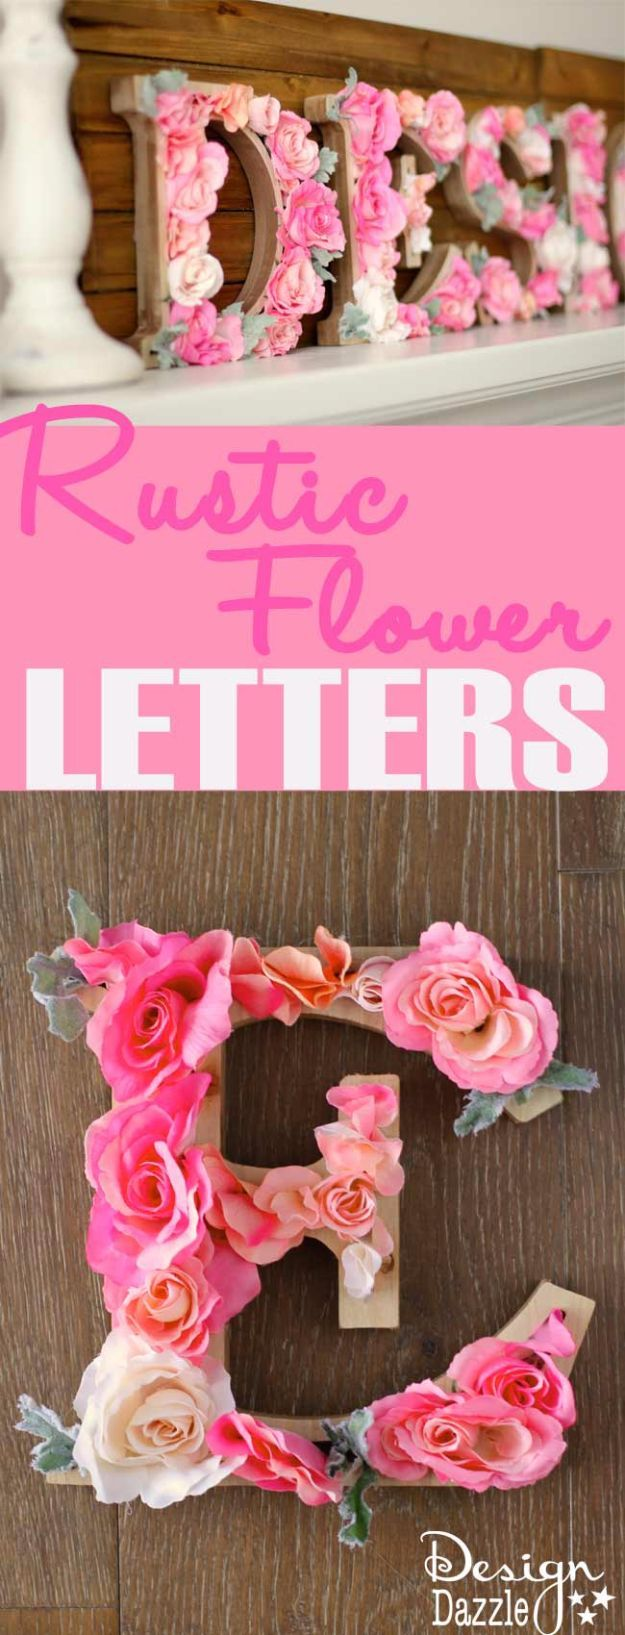 DIY Wall Letters and Word Signs - DIY Rustic Letters With Flowers - Initials Wall Art for Creative Home Decor Ideas - Cool Architectural Letter Projects and Wall Art Tutorials for Living Room Decor, Bedroom Ideas. Girl or Boy Nursery. Paint, Glitter, String Art, Easy Cardboard and Rustic Wooden Ideas - DIY Projects and Crafts by DIY JOY http://diyjoy.com/diy-letter-word-signs